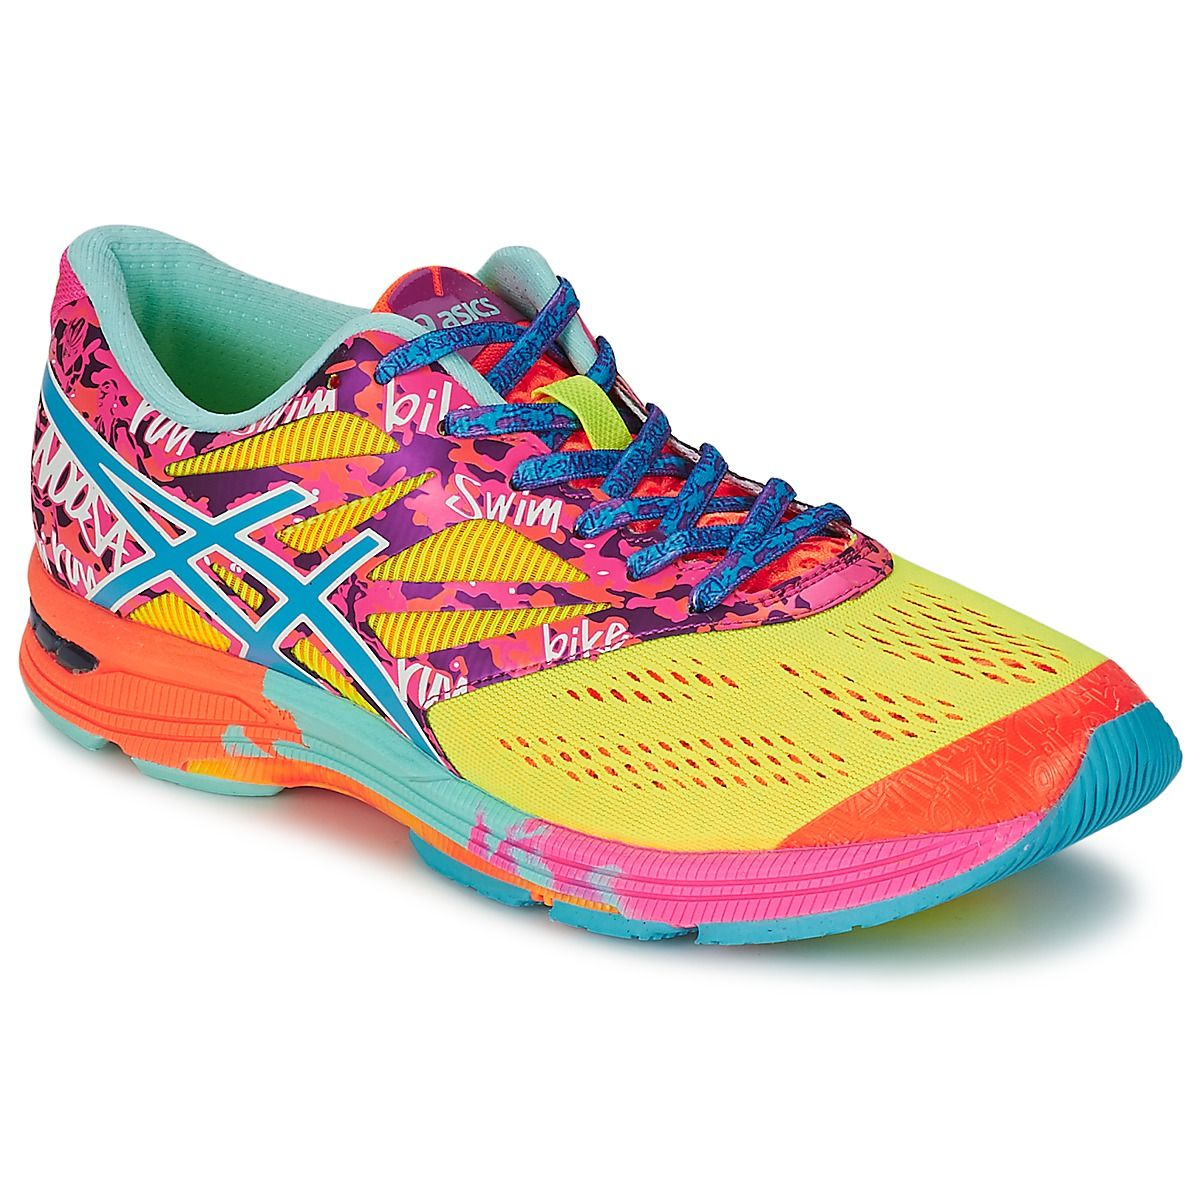 Asics Gel Noosa Tri 10 baskets